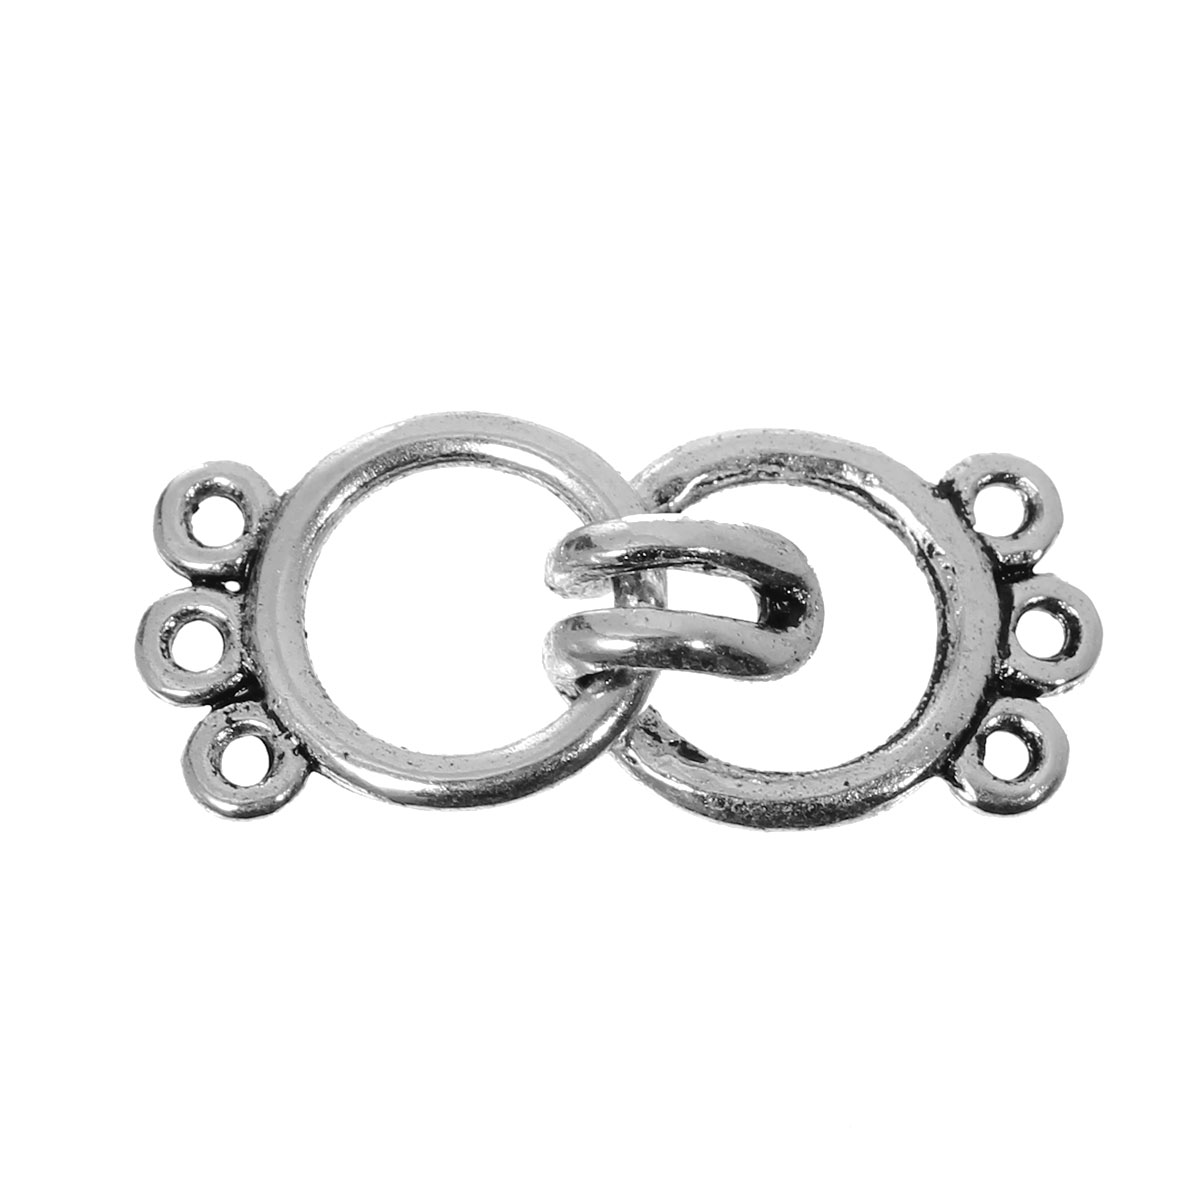 DoreenBeads Zinc Based Alloy Toggle Clasps Findings Round Antique Silver 3 Holes 15mm x11mm 14mm x11mm ,10 Sets 2016 new